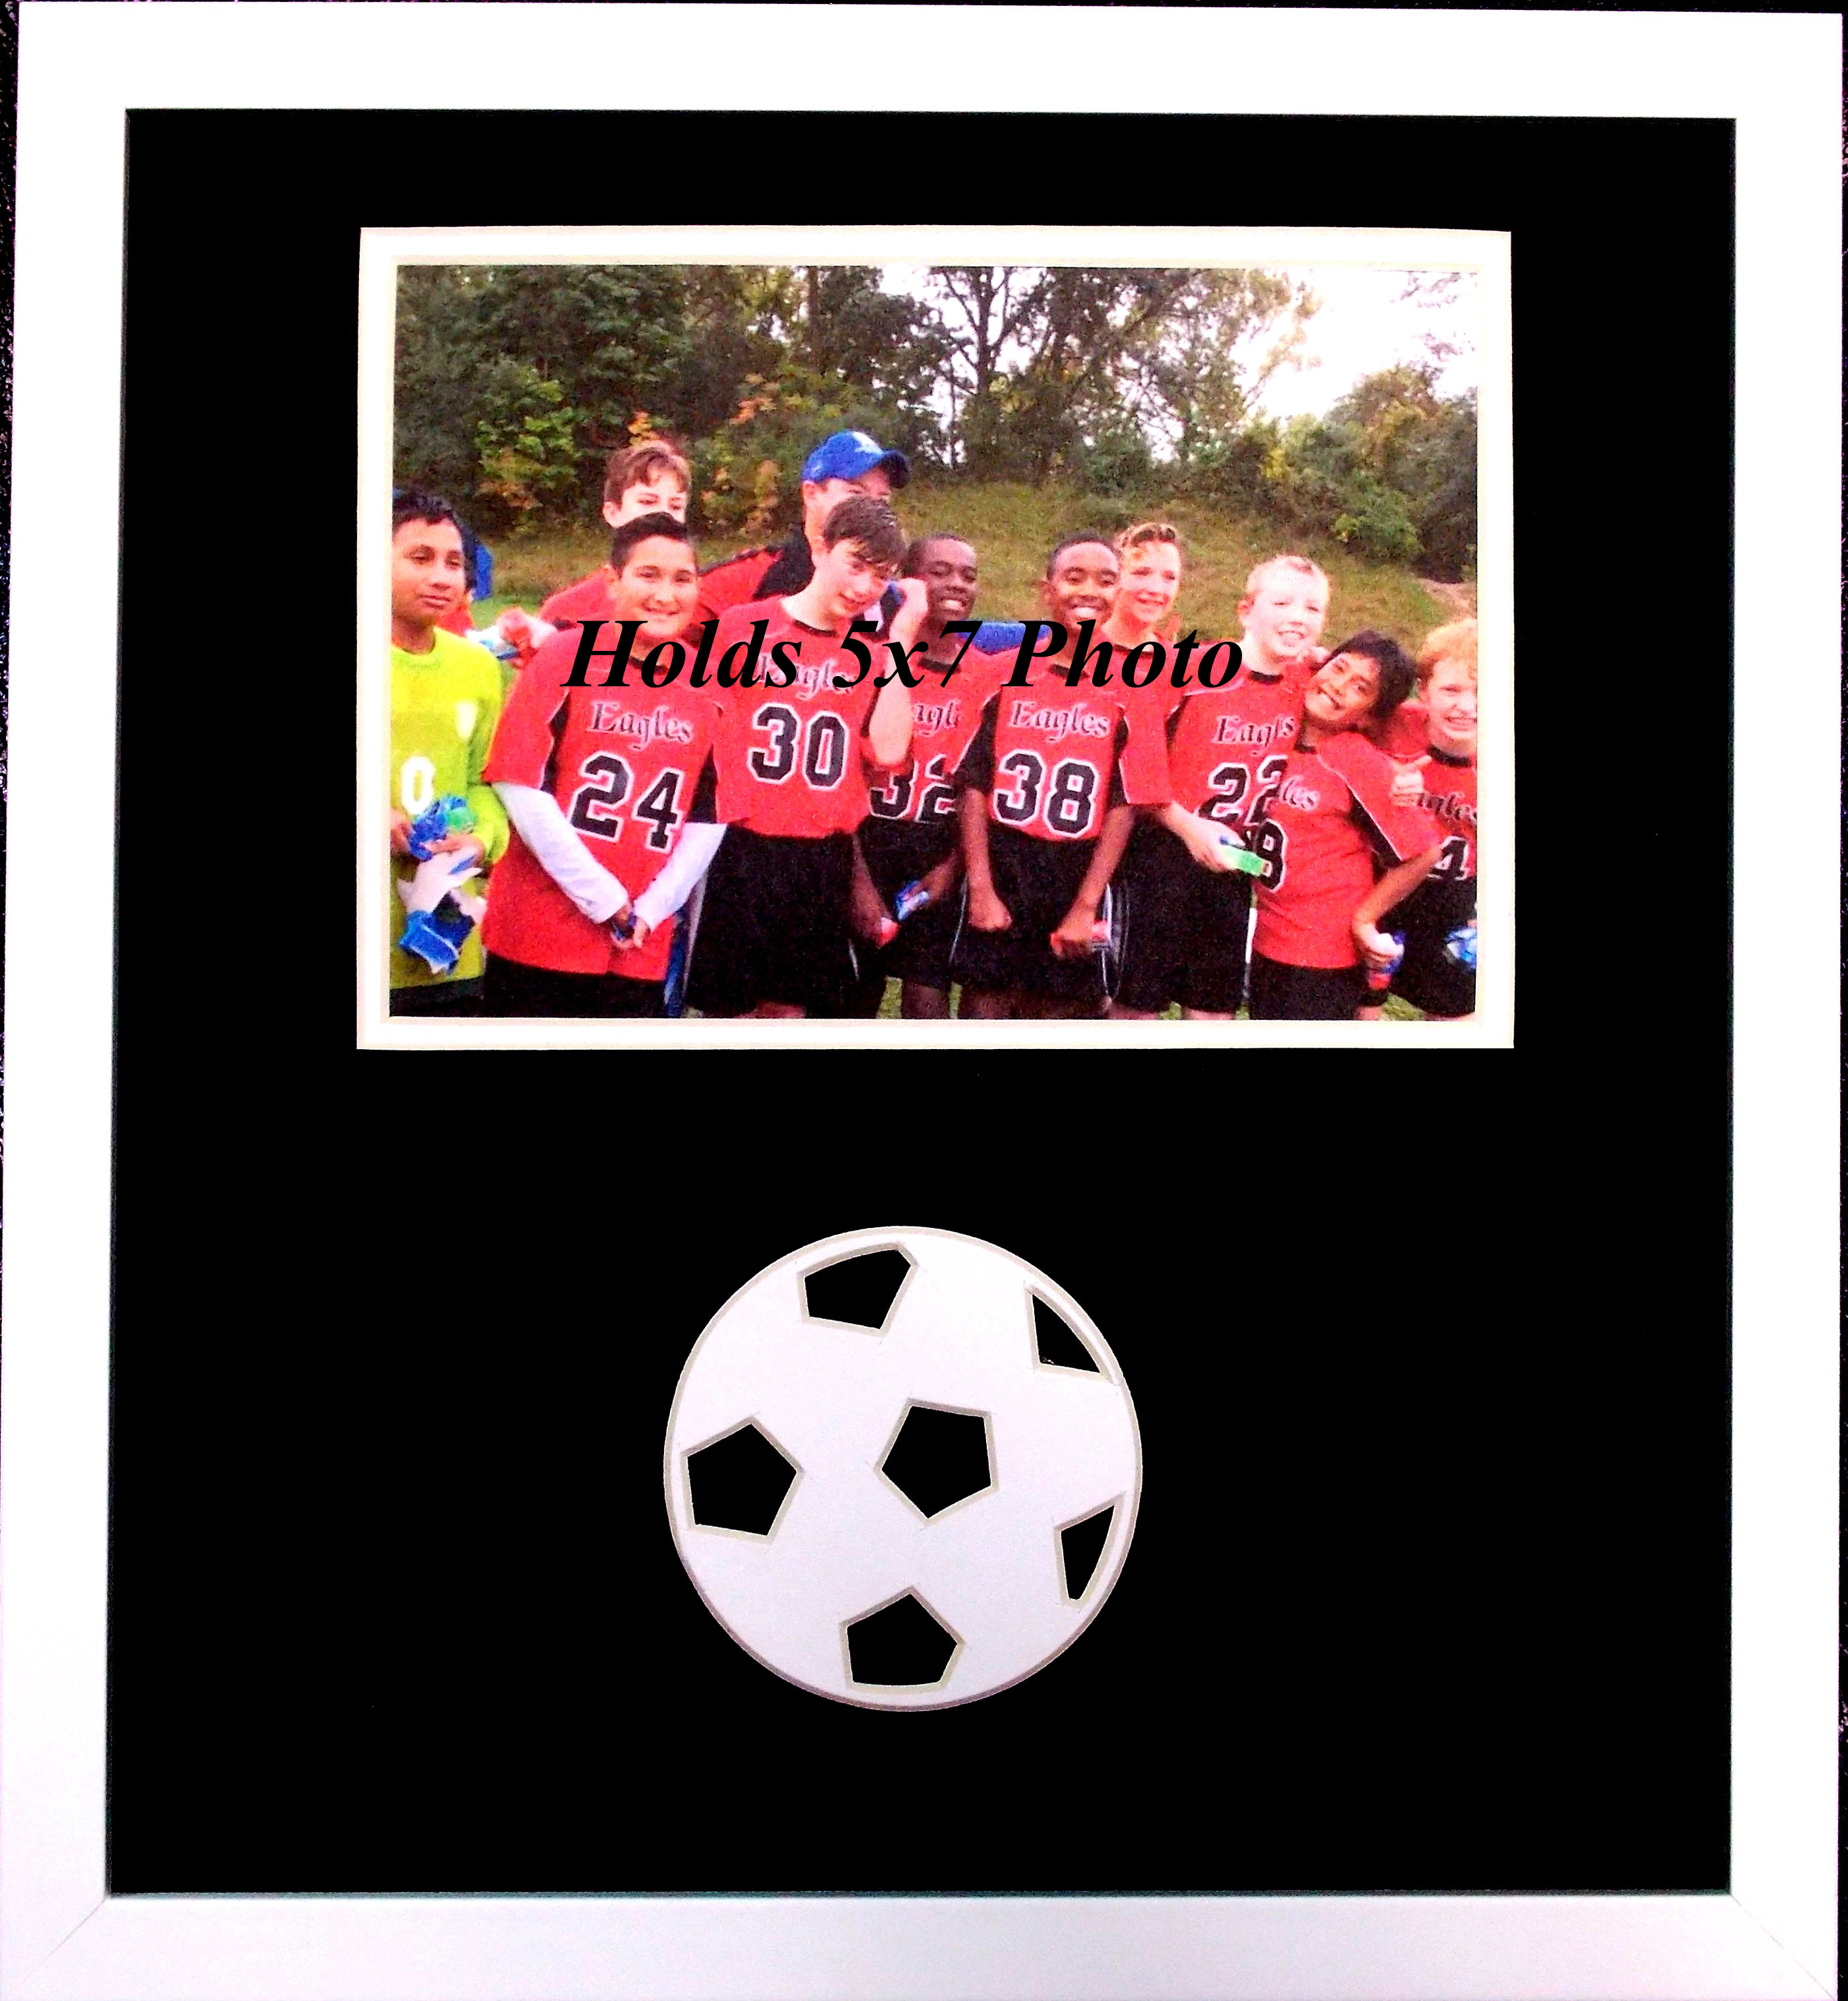 Wall mount picture frame black and white soccer ball wood frame wall mount picture frame black and white soccer ball wood frame for 5x7 photo novelty photo frame jeuxipadfo Images